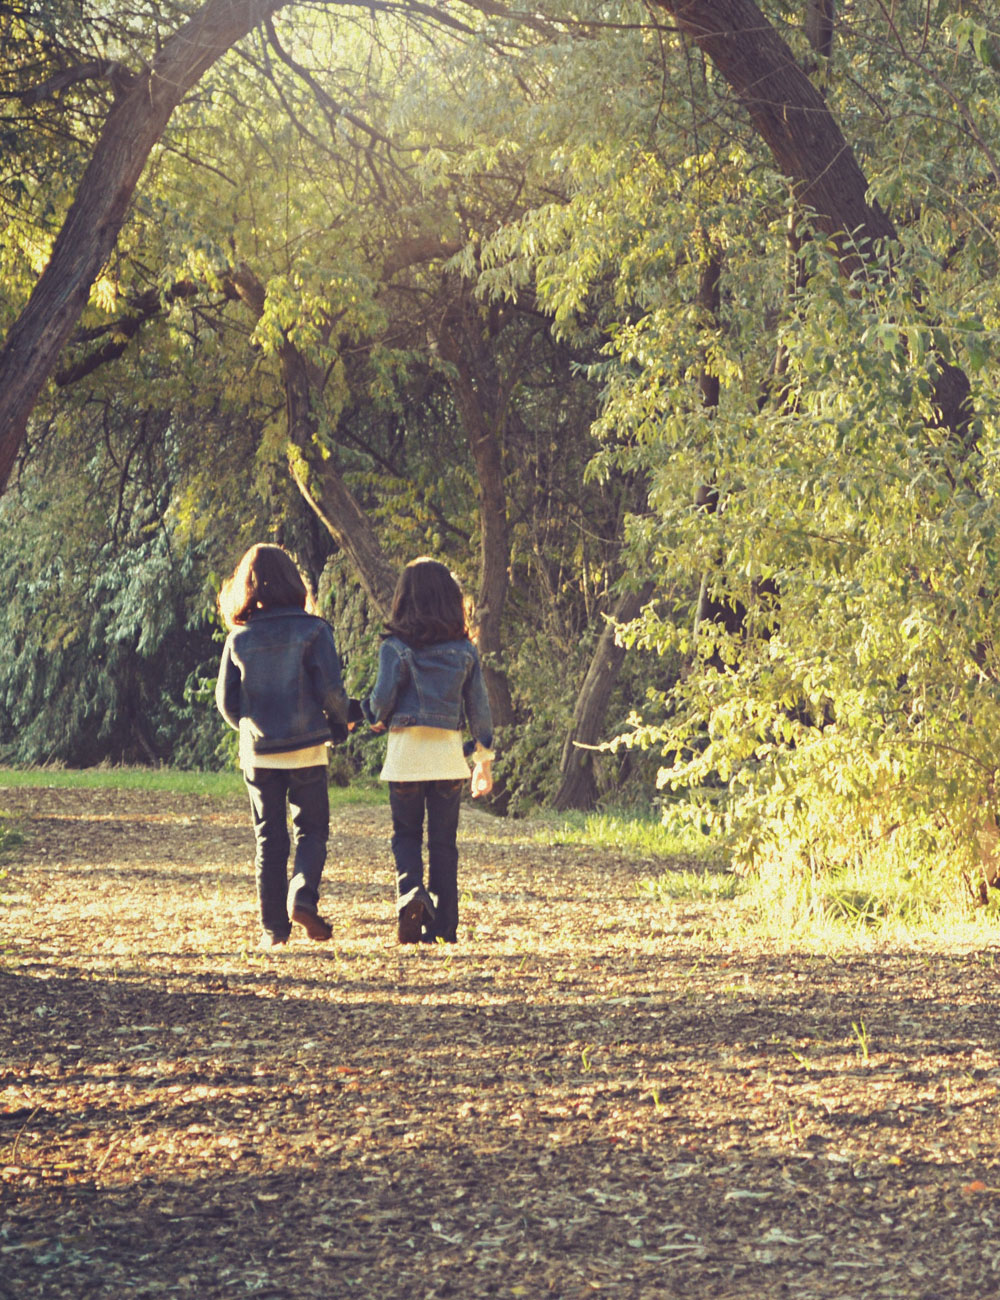 Two children walking along a wooded path